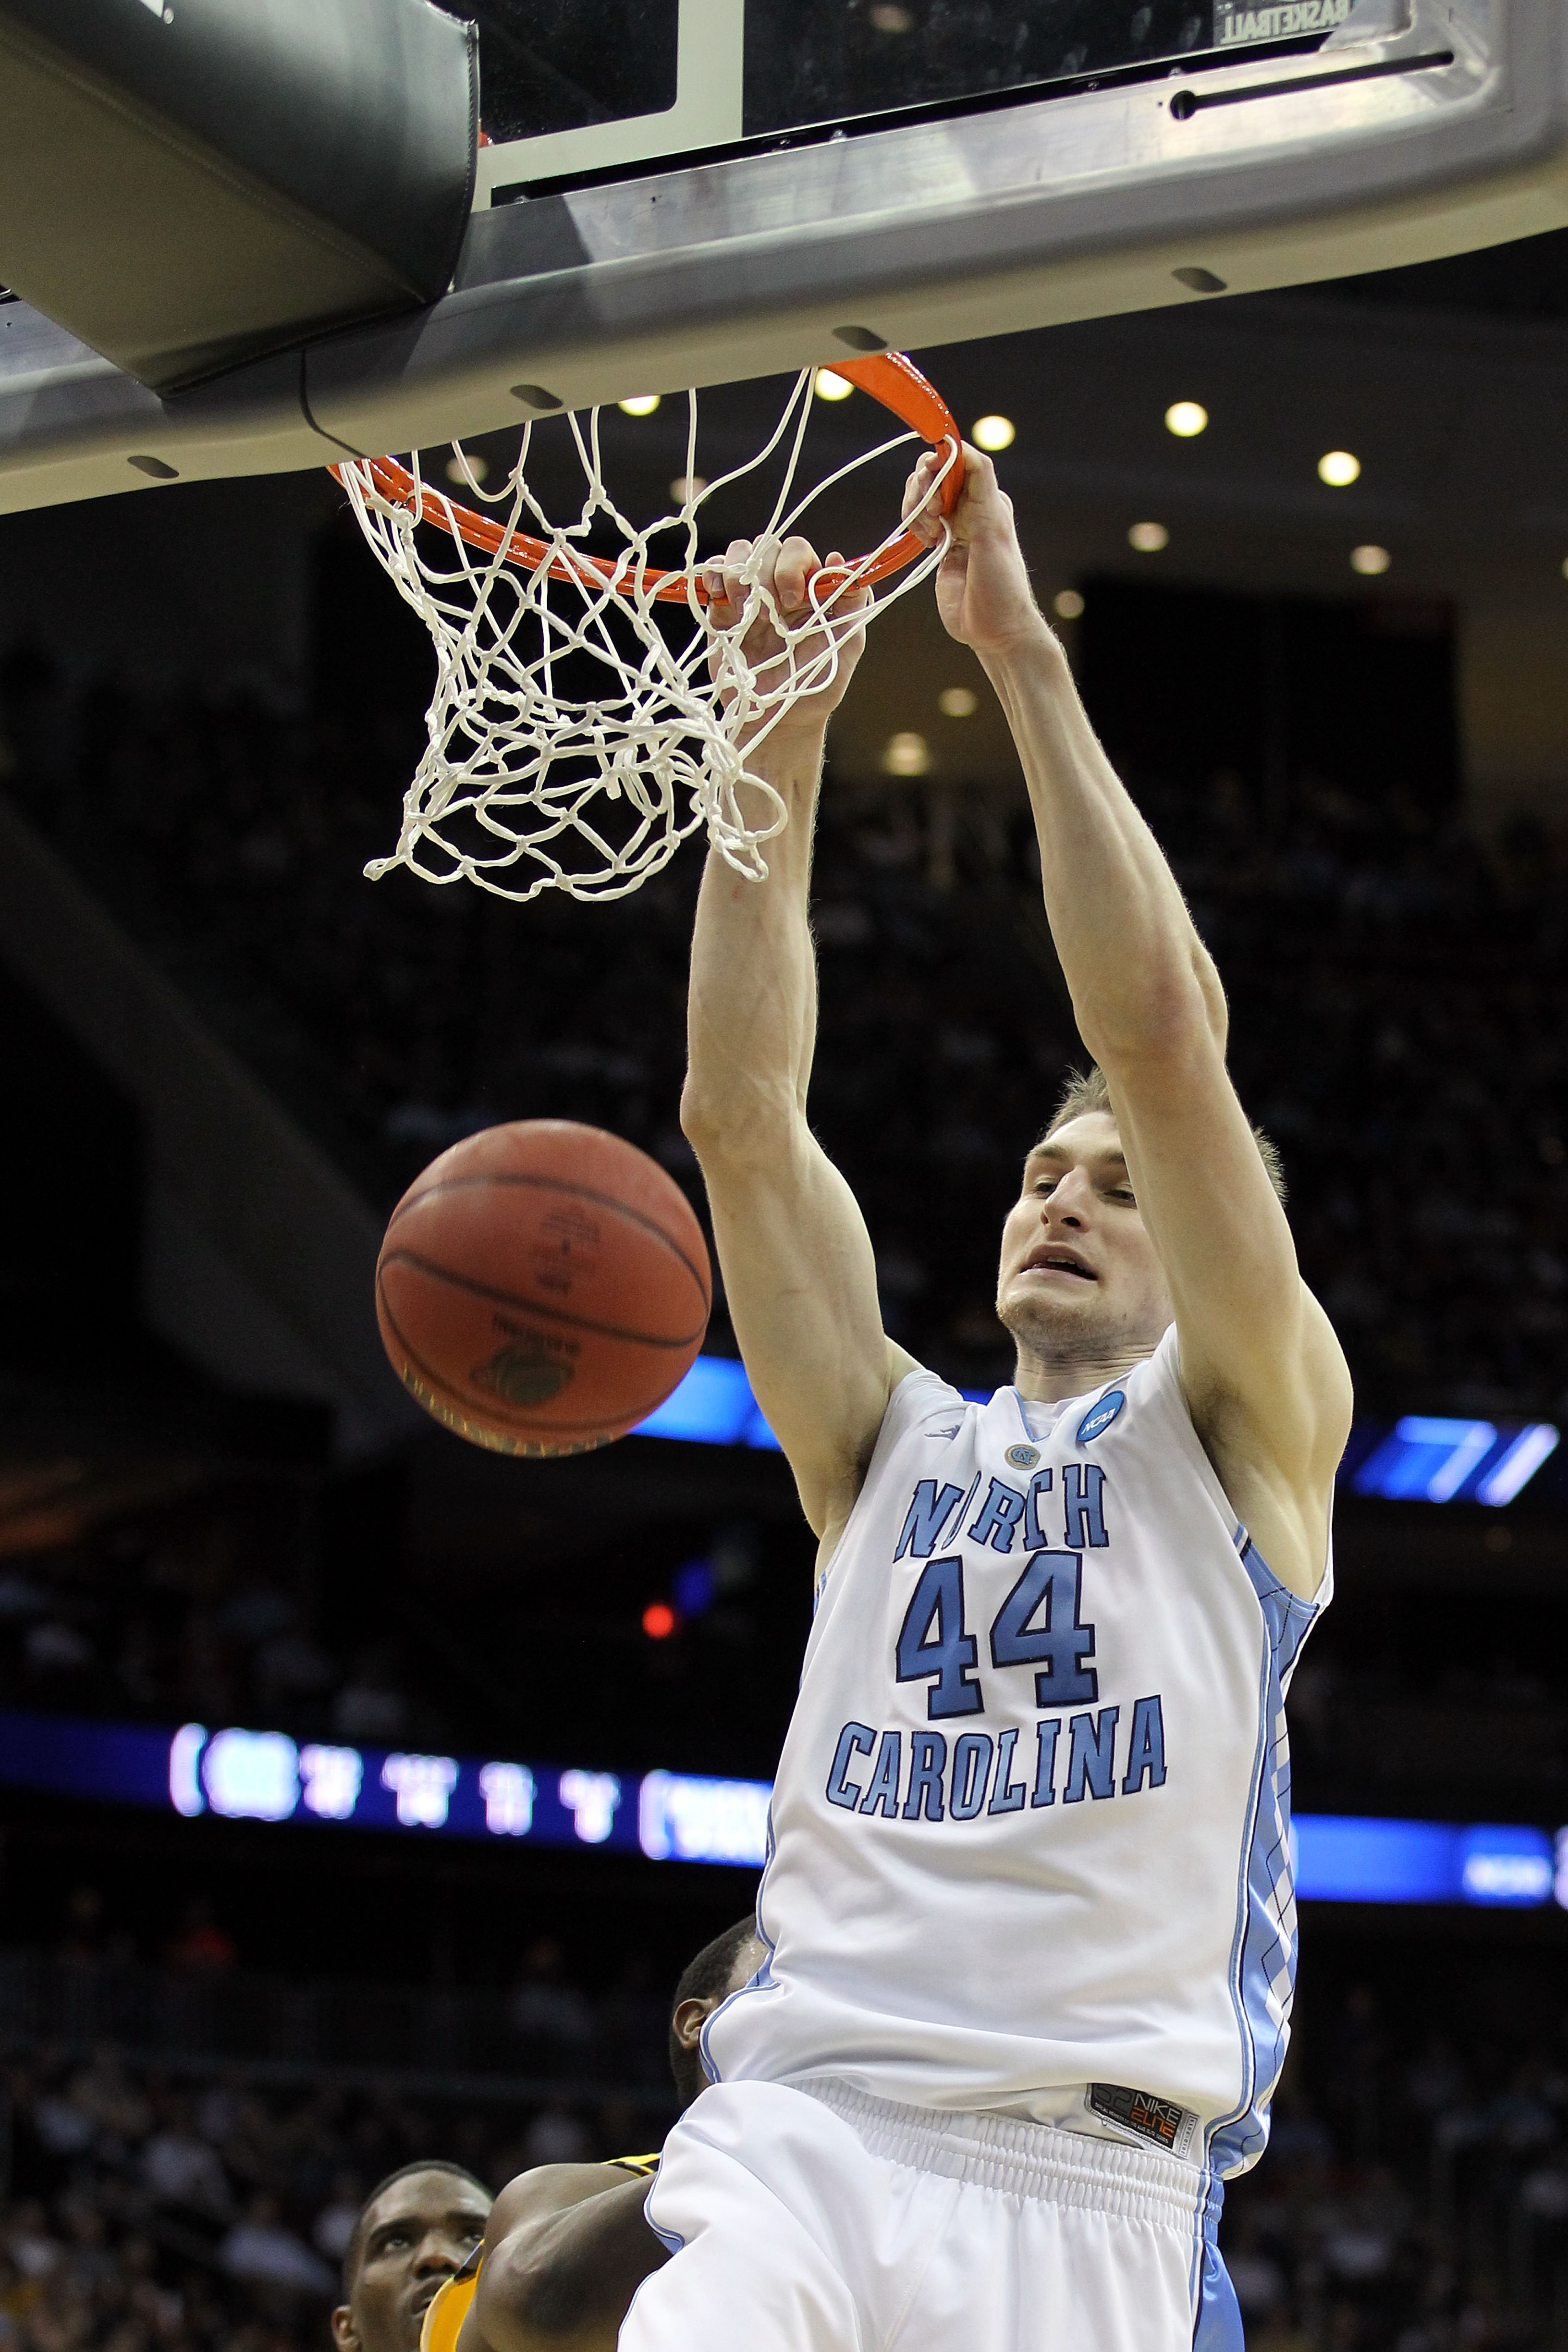 NEWARK, NJ - MARCH 25:  Tyler Zeller #44 of the North Carolina Tar Heels dunks against the Marquette Golden Eagles during the second half of the east regional semifinal of the 2011 NCAA Men's Basketball Tournament at the Prudential Center on March 25, 201